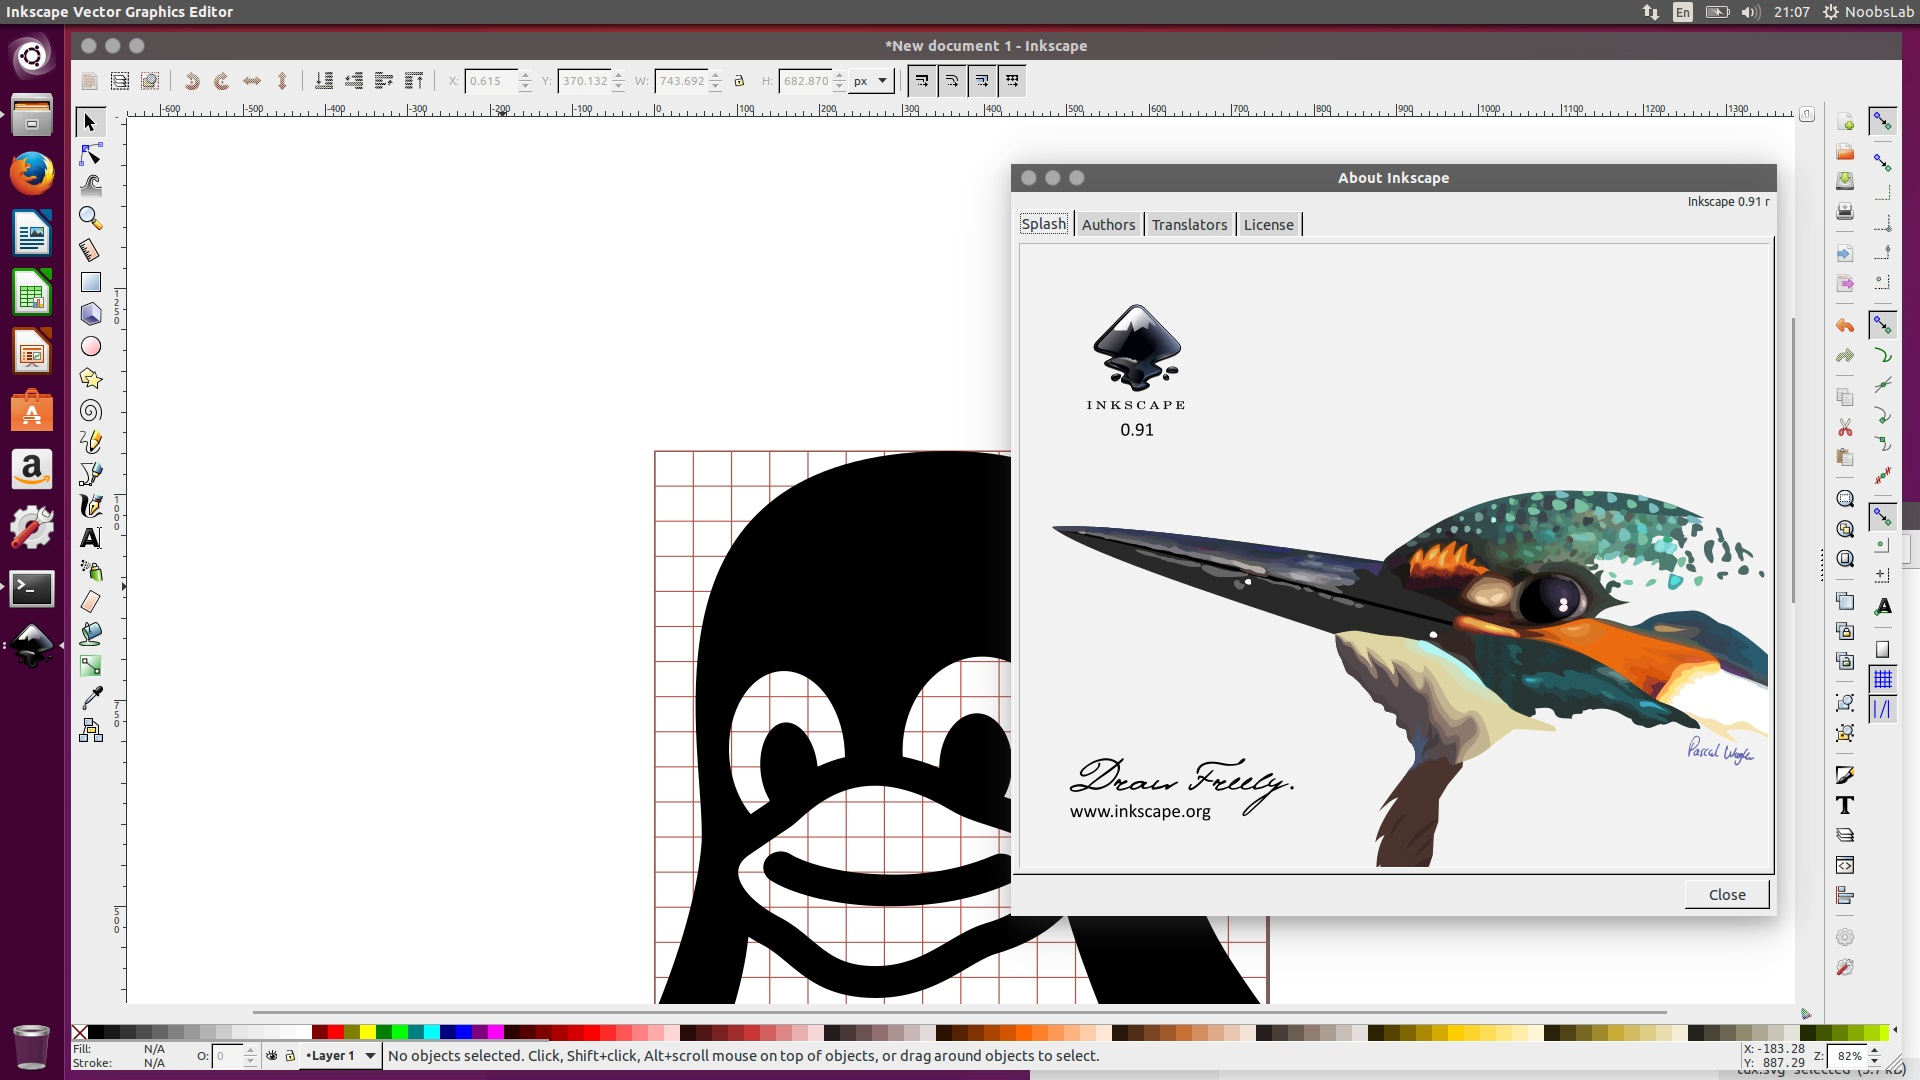 Inkscape: A Great Open Source Vector Graphics Editor.